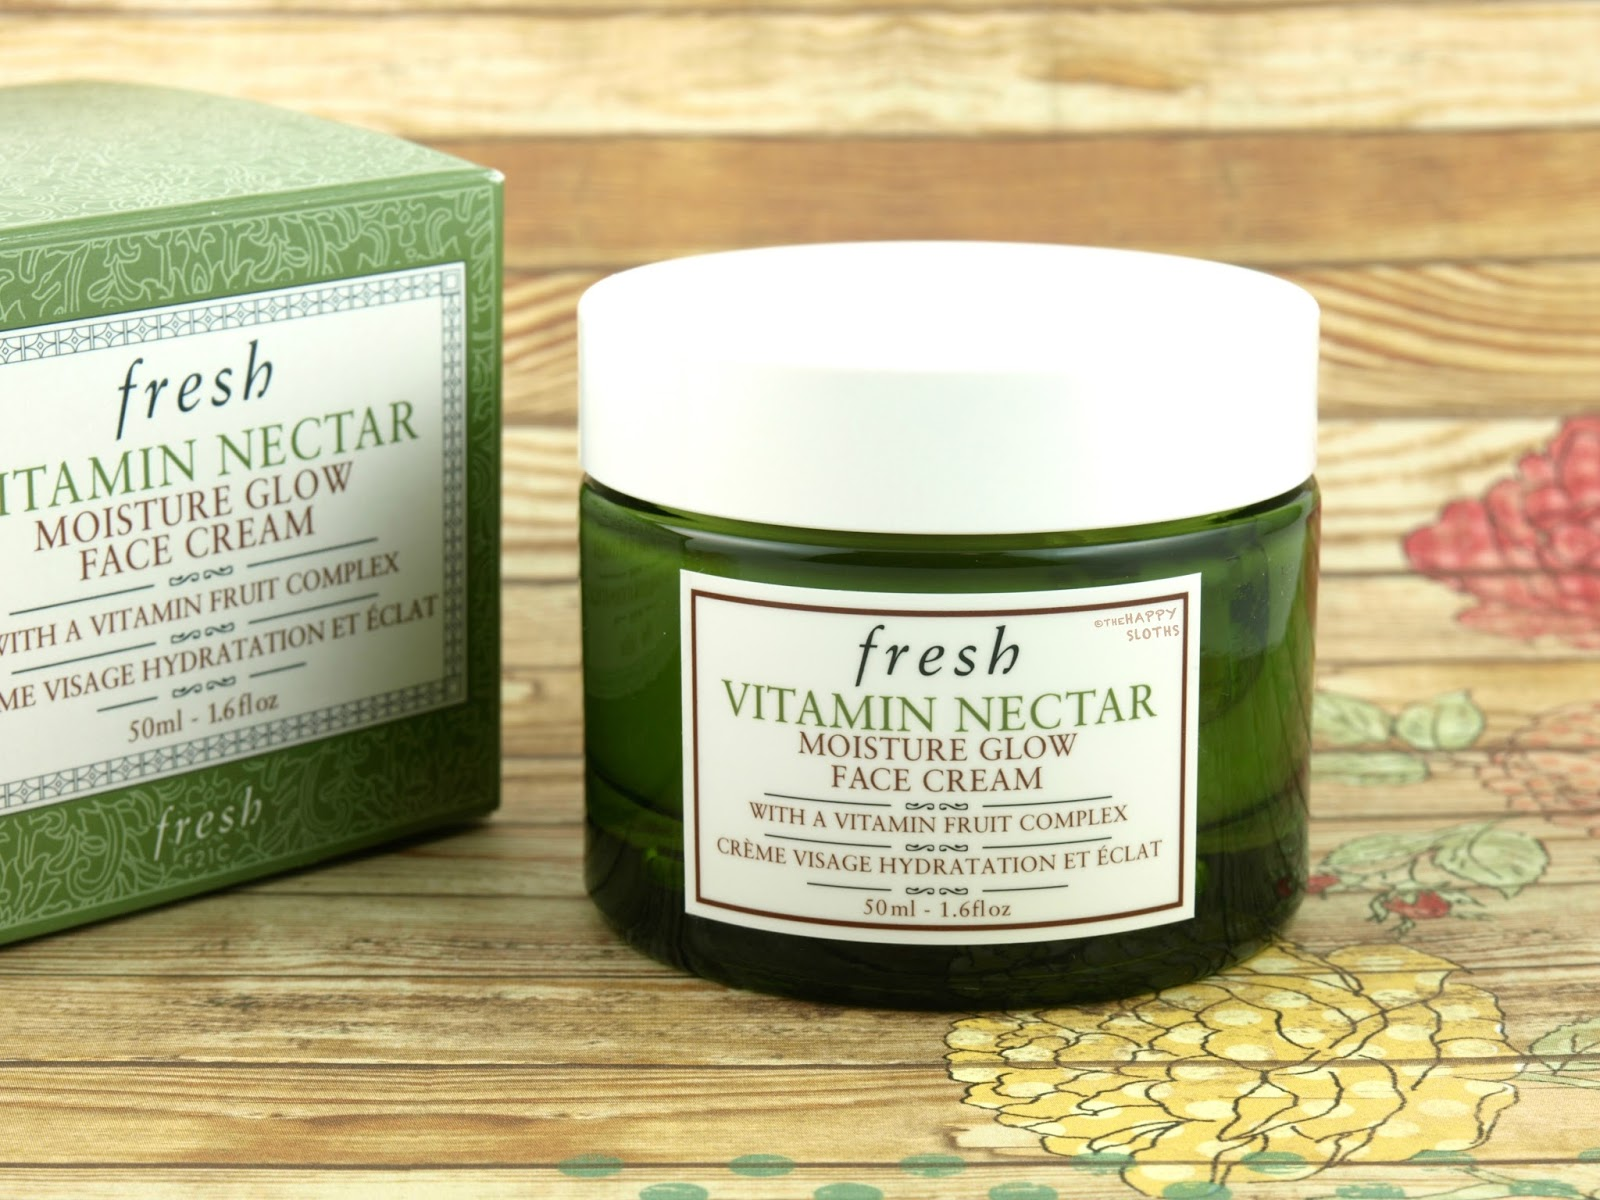 Fresh Vitamin Nectar Moisture Glow Face Cream: Review